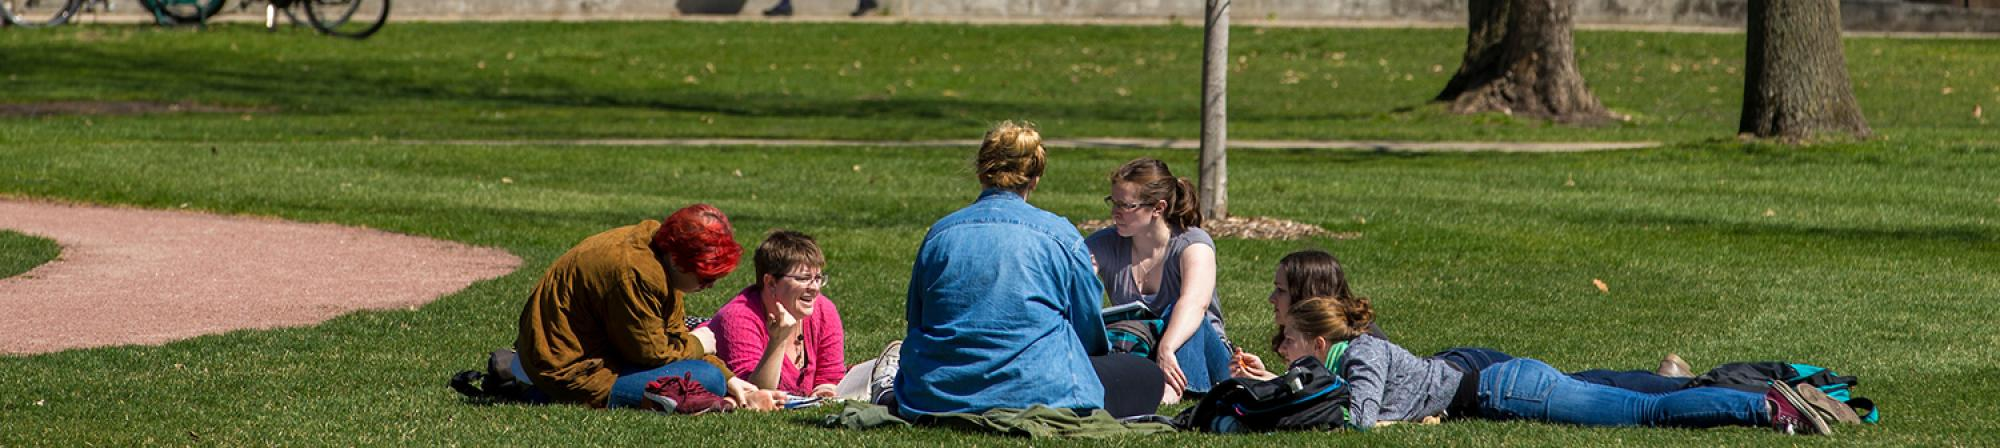 fice students sitting and hanging out on mac field in a circle